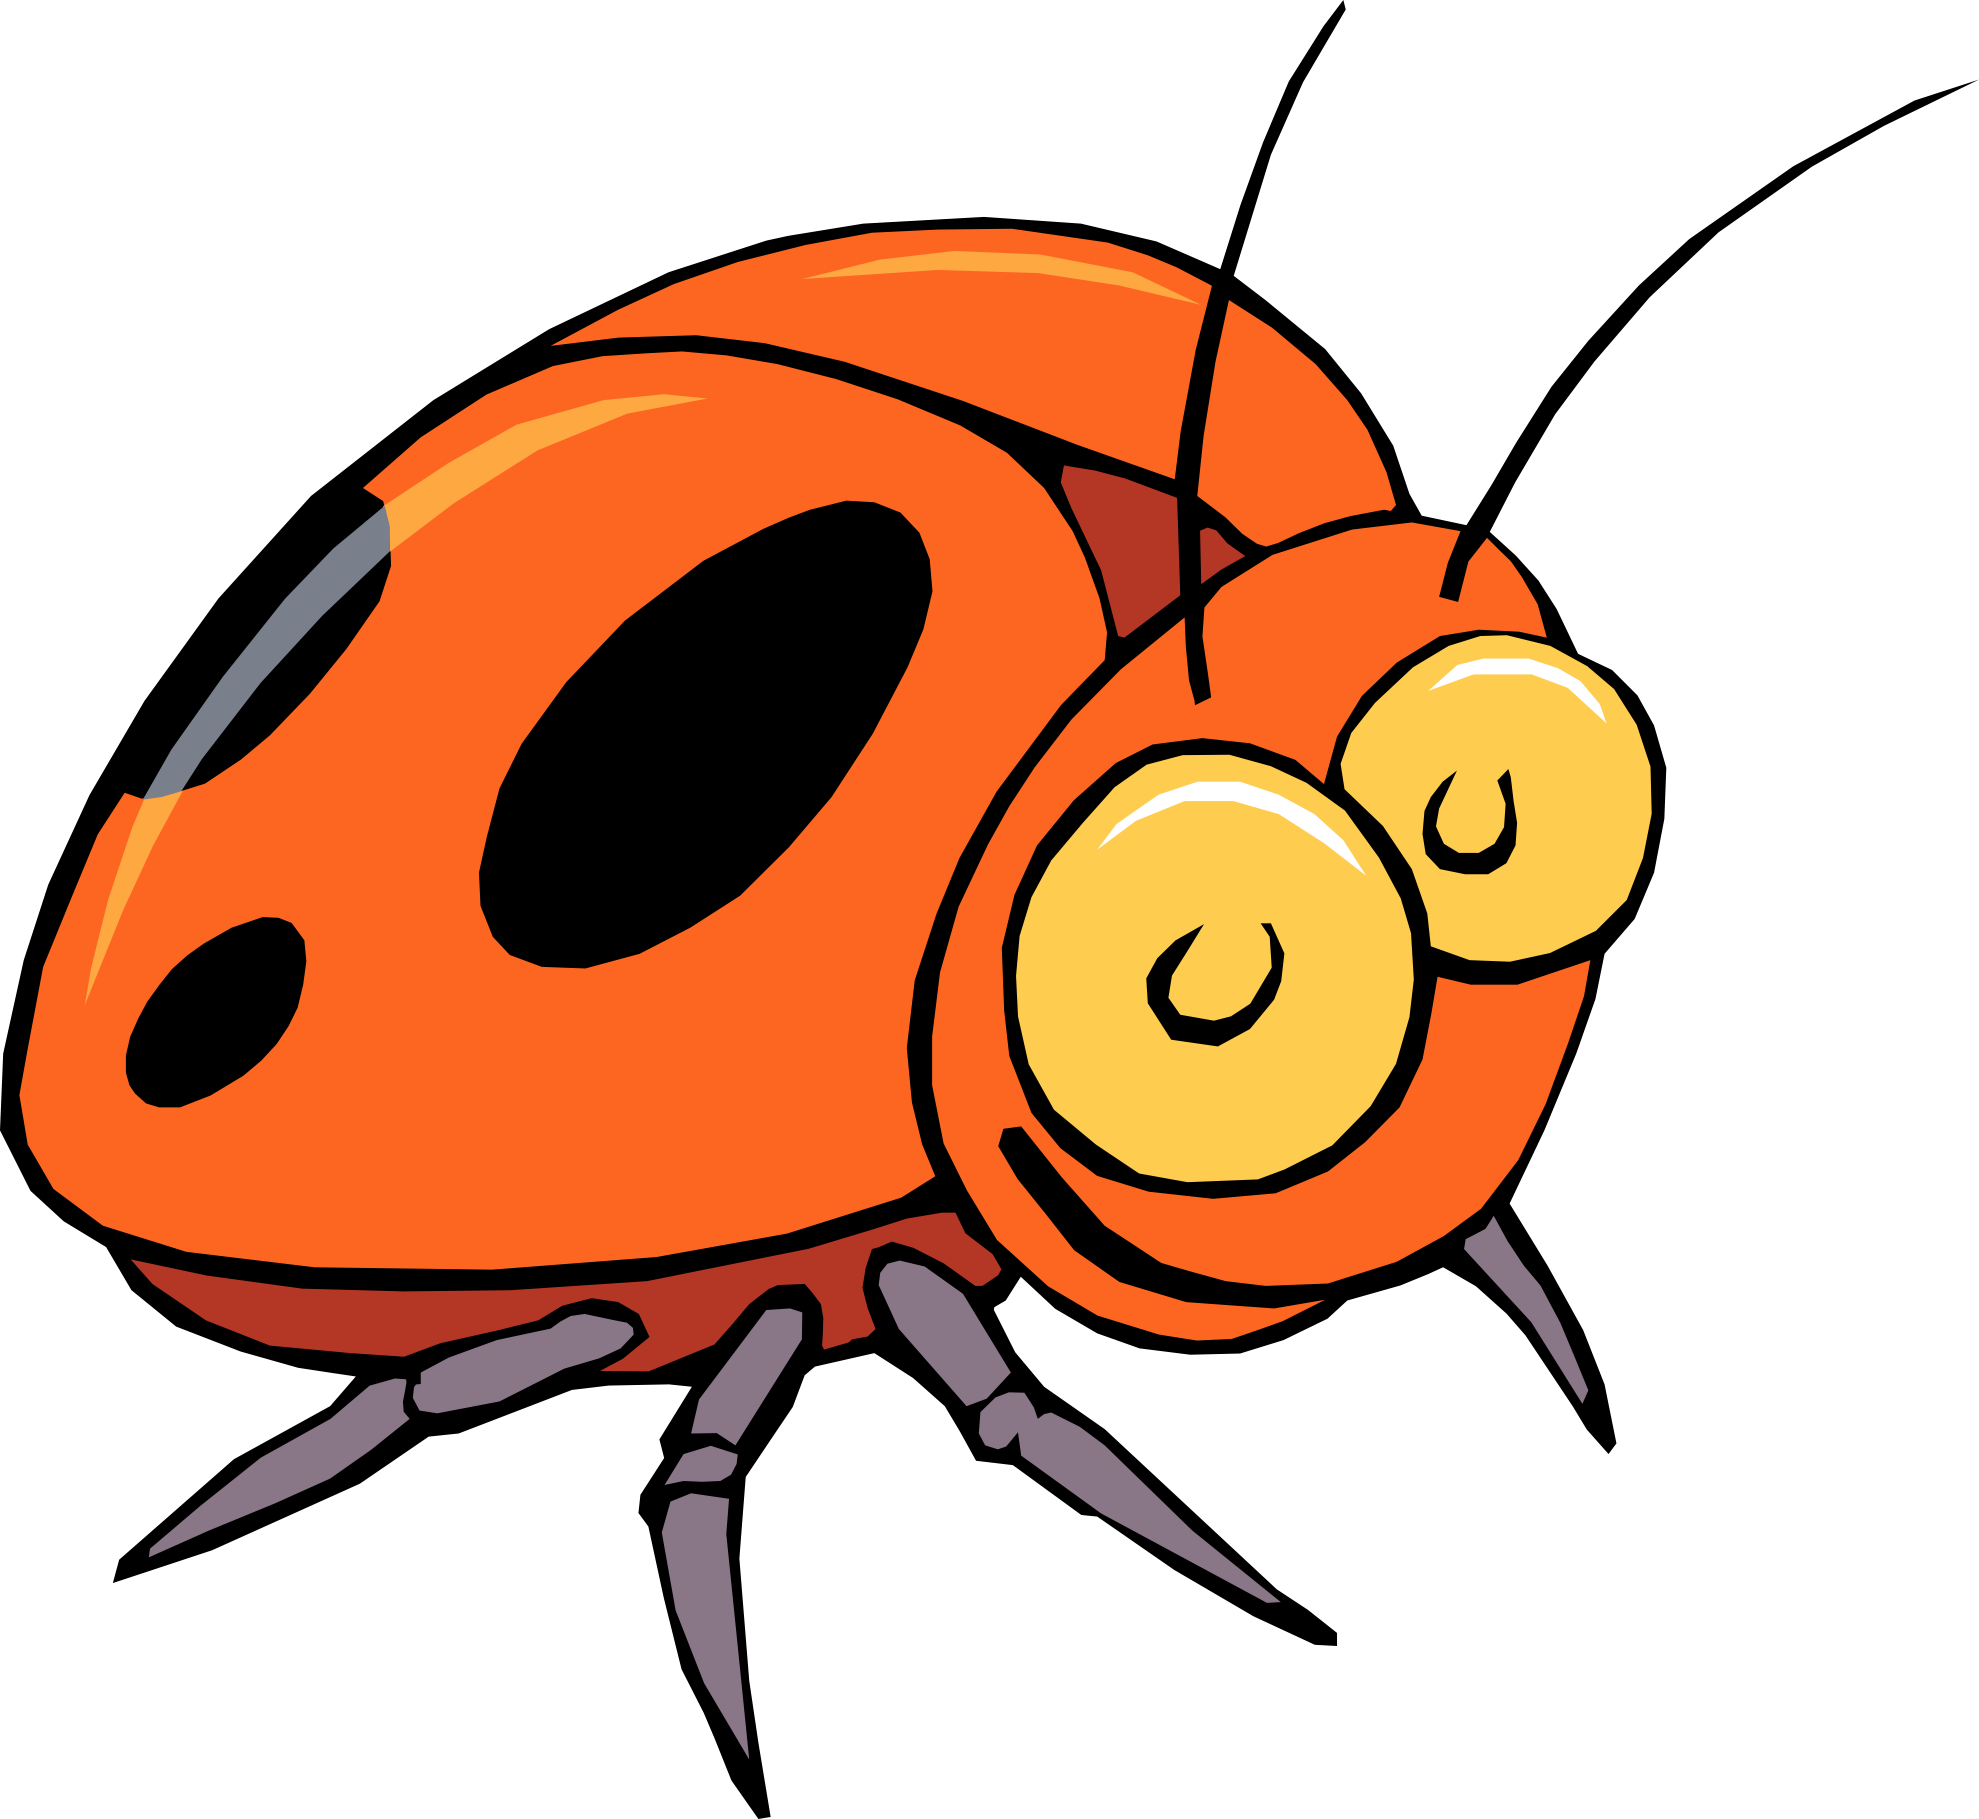 Cartoon Bugs Clipart - Clipart Suggest